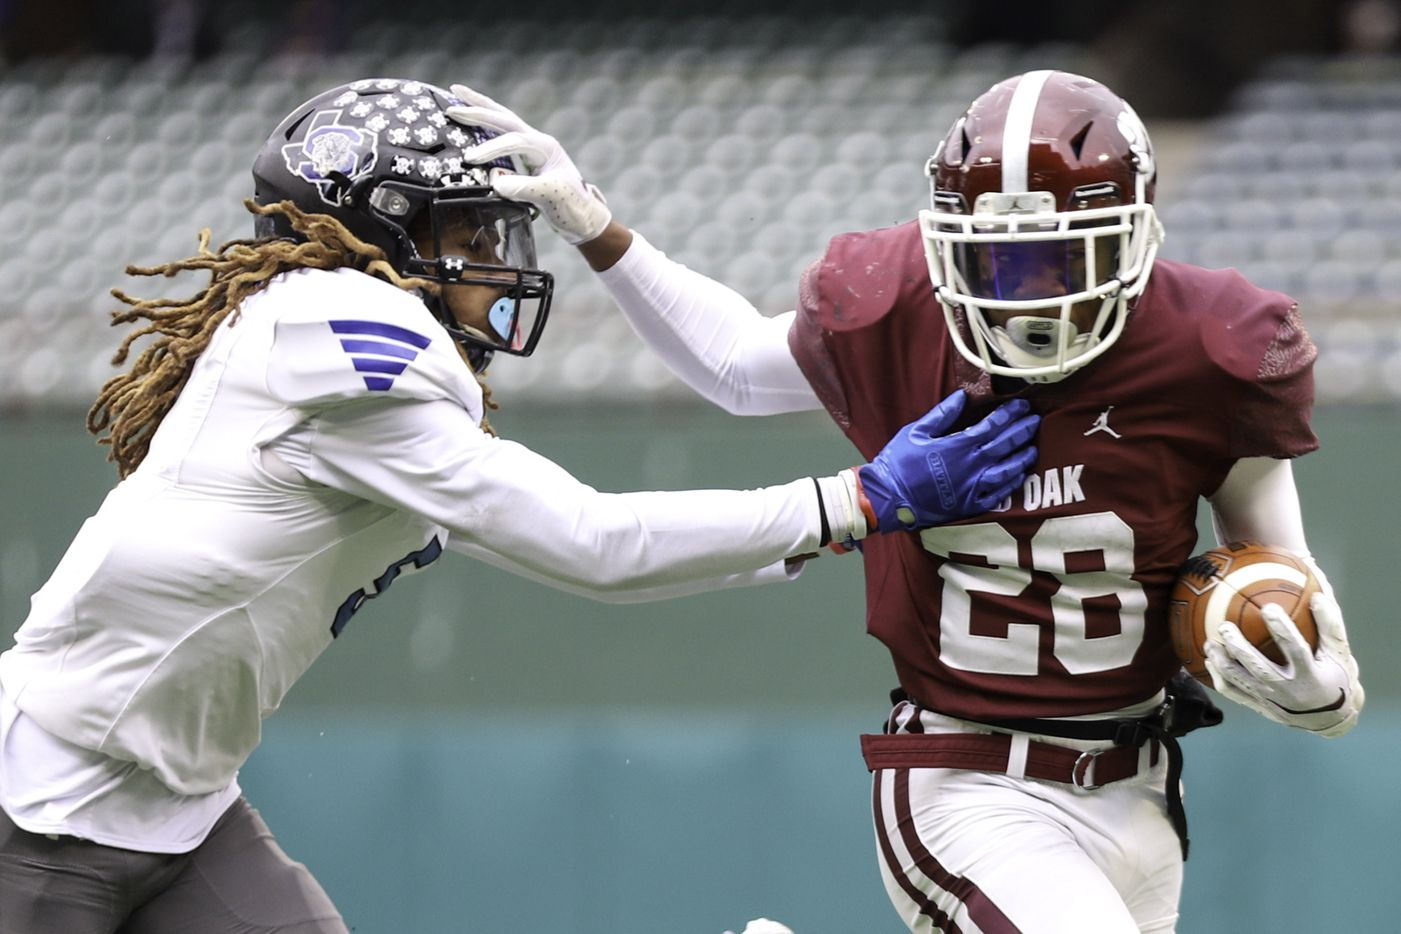 Red Oak running back Iverson Young (28) gives a stiff-arm to Mansfield Summit defensive back Sean Smith (5) during the first half at Globe Life Park in Arlington, Texas, Friday, Jan. 1, 2021. (Elias Valverde II / Special Contributor)